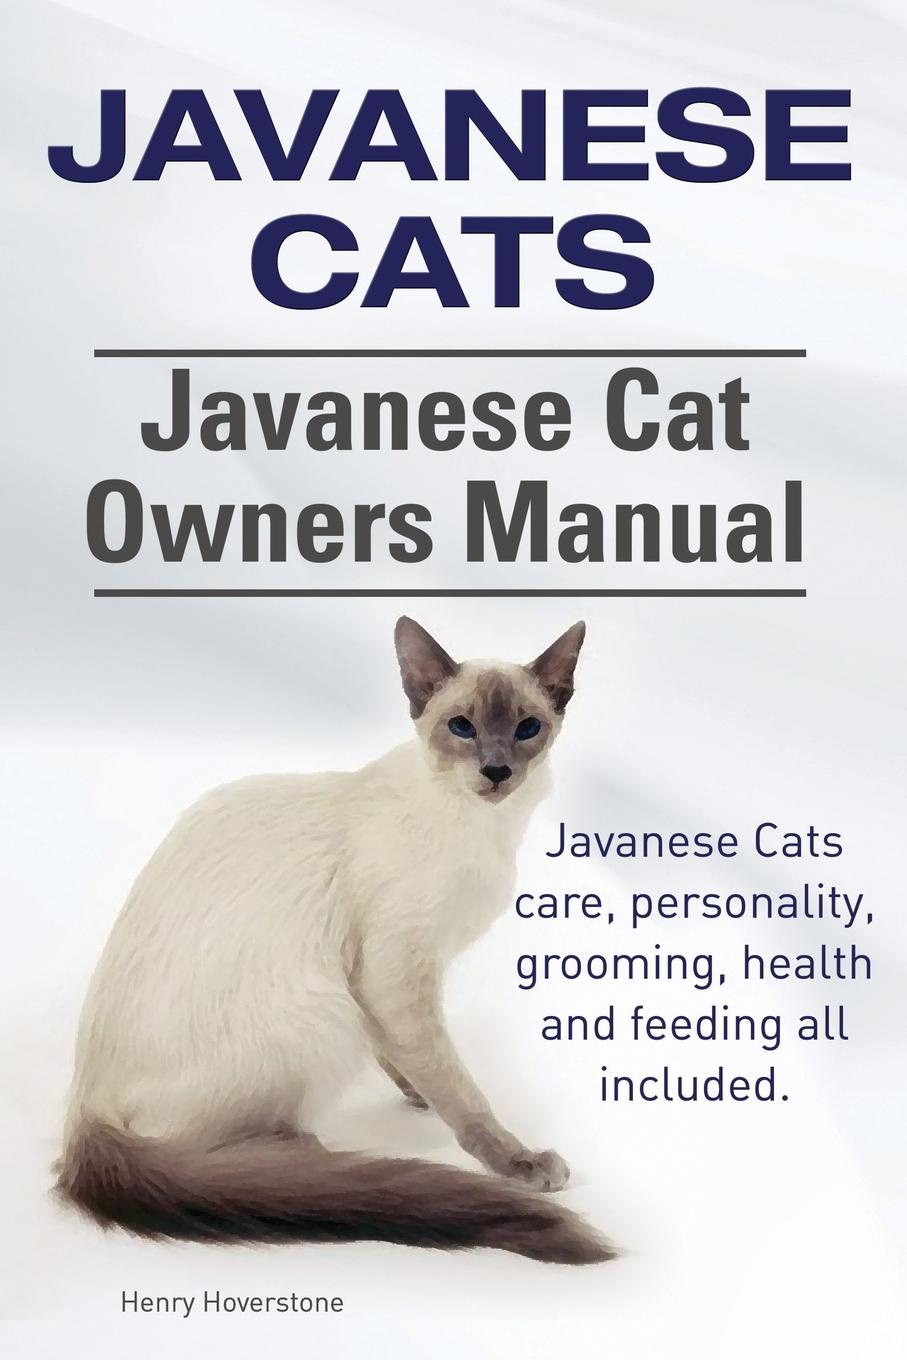 Henry Hoverstone Javanese Cats. Javanese Cat Owners Manual. Javanese Cats care, personality, grooming, health and feeding all included. how to catch a cat